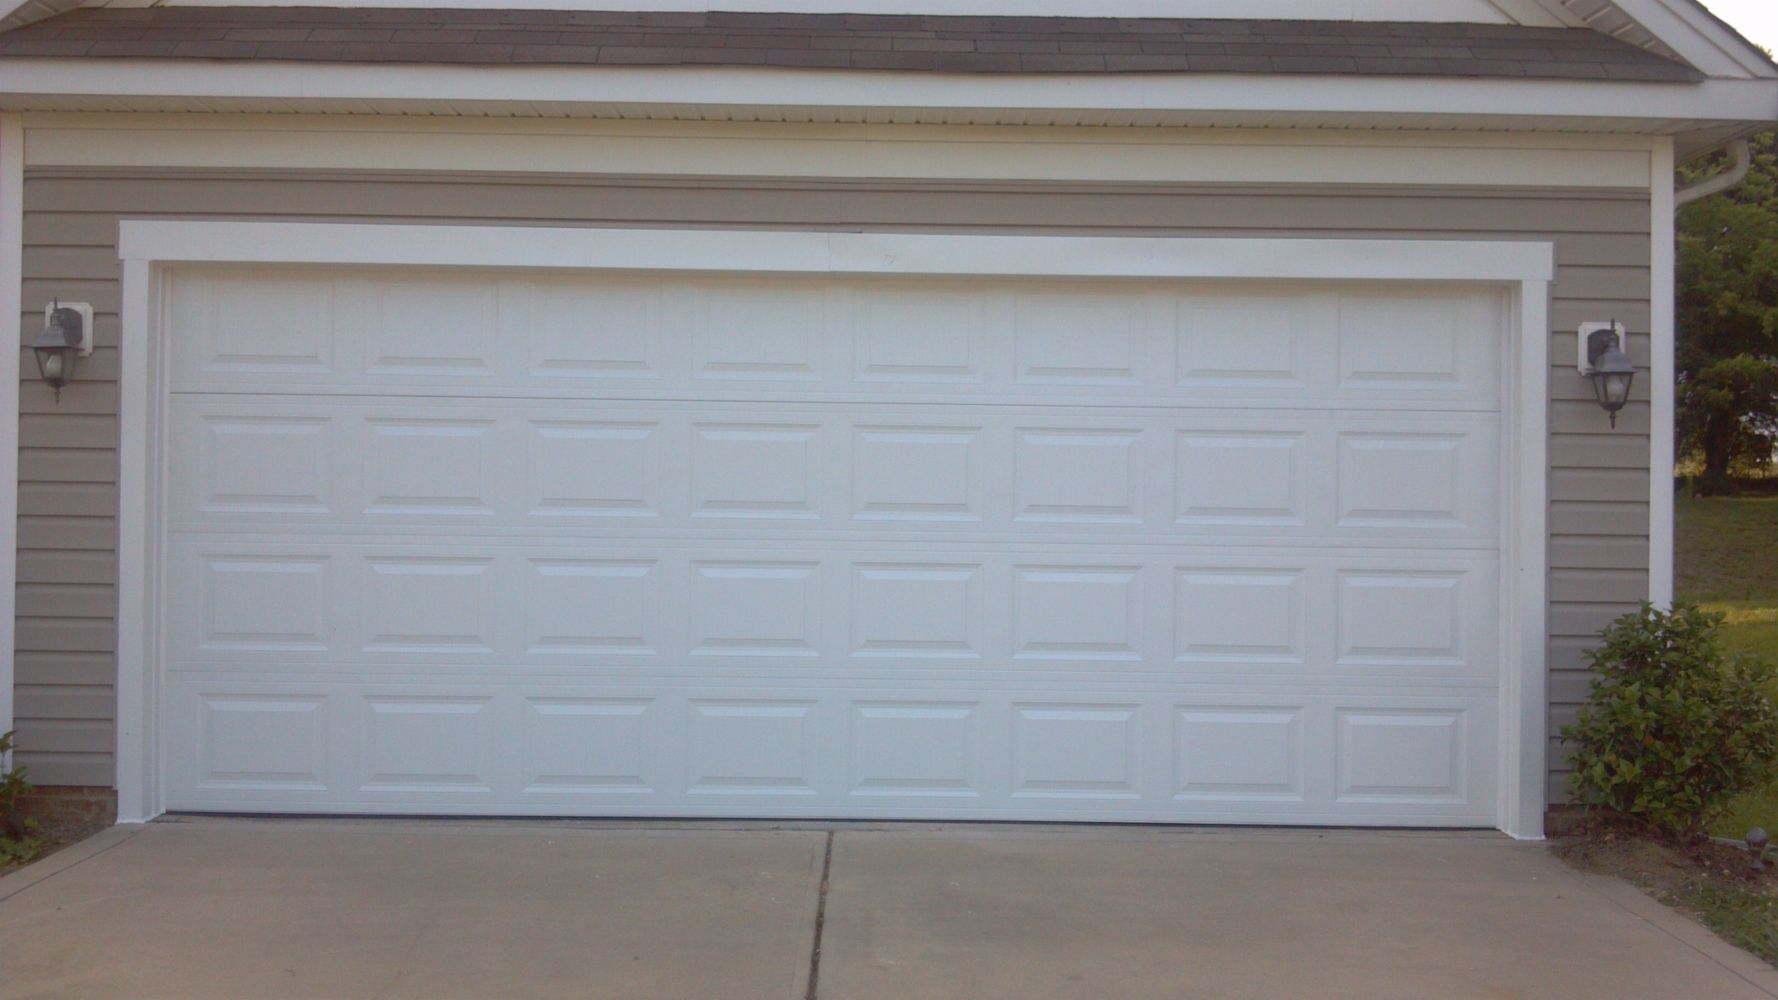 Garage Door Repair Amp Installation In Brisbane Ca Aaa